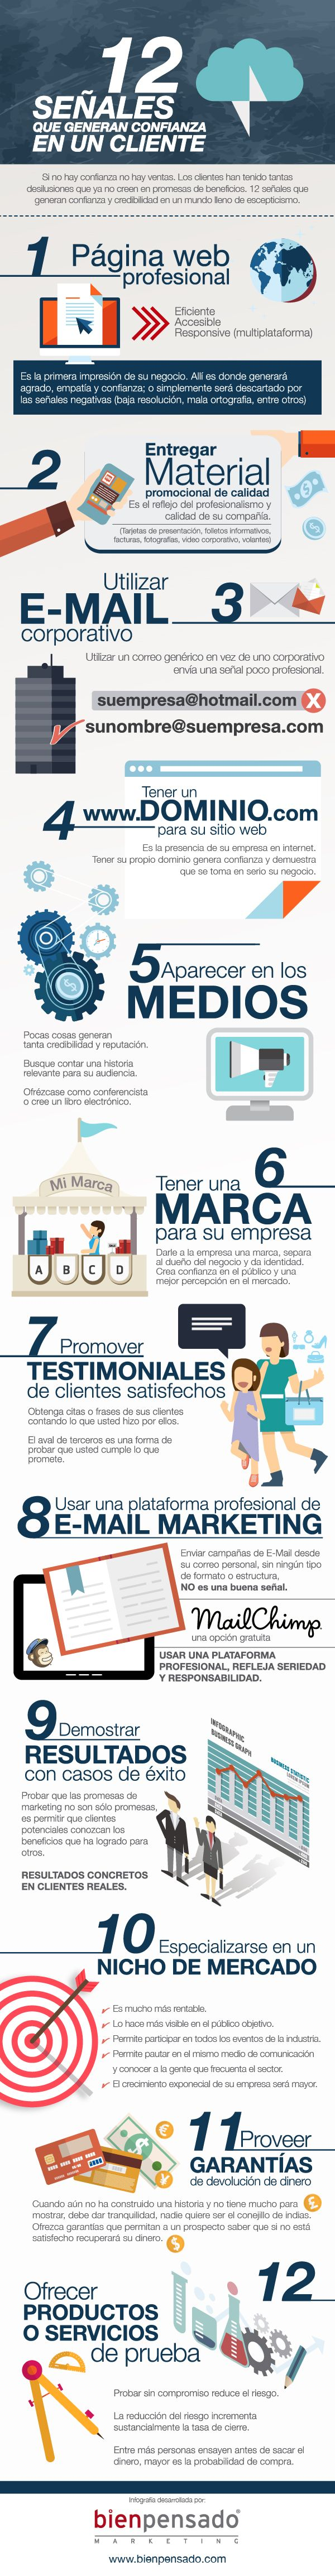 Infografía sobre Marketing.